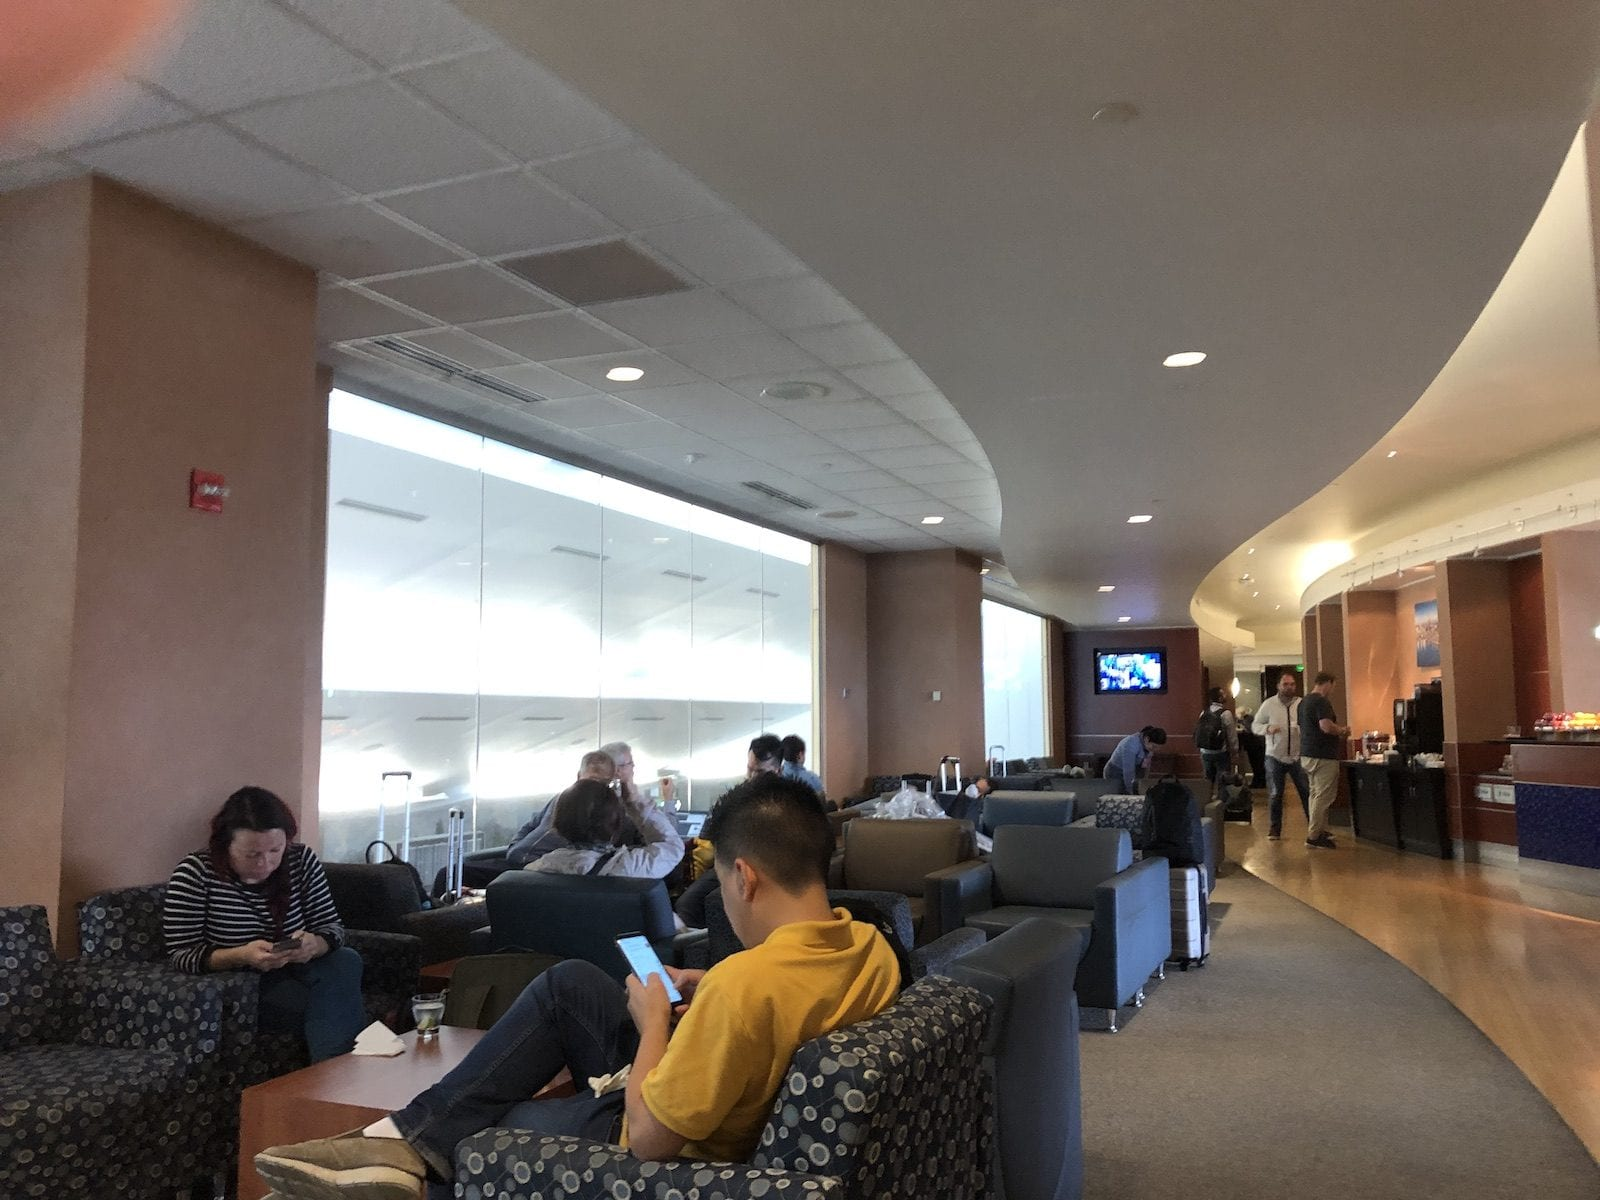 Interior of The Clud Sea Lounge, Seattle Airport